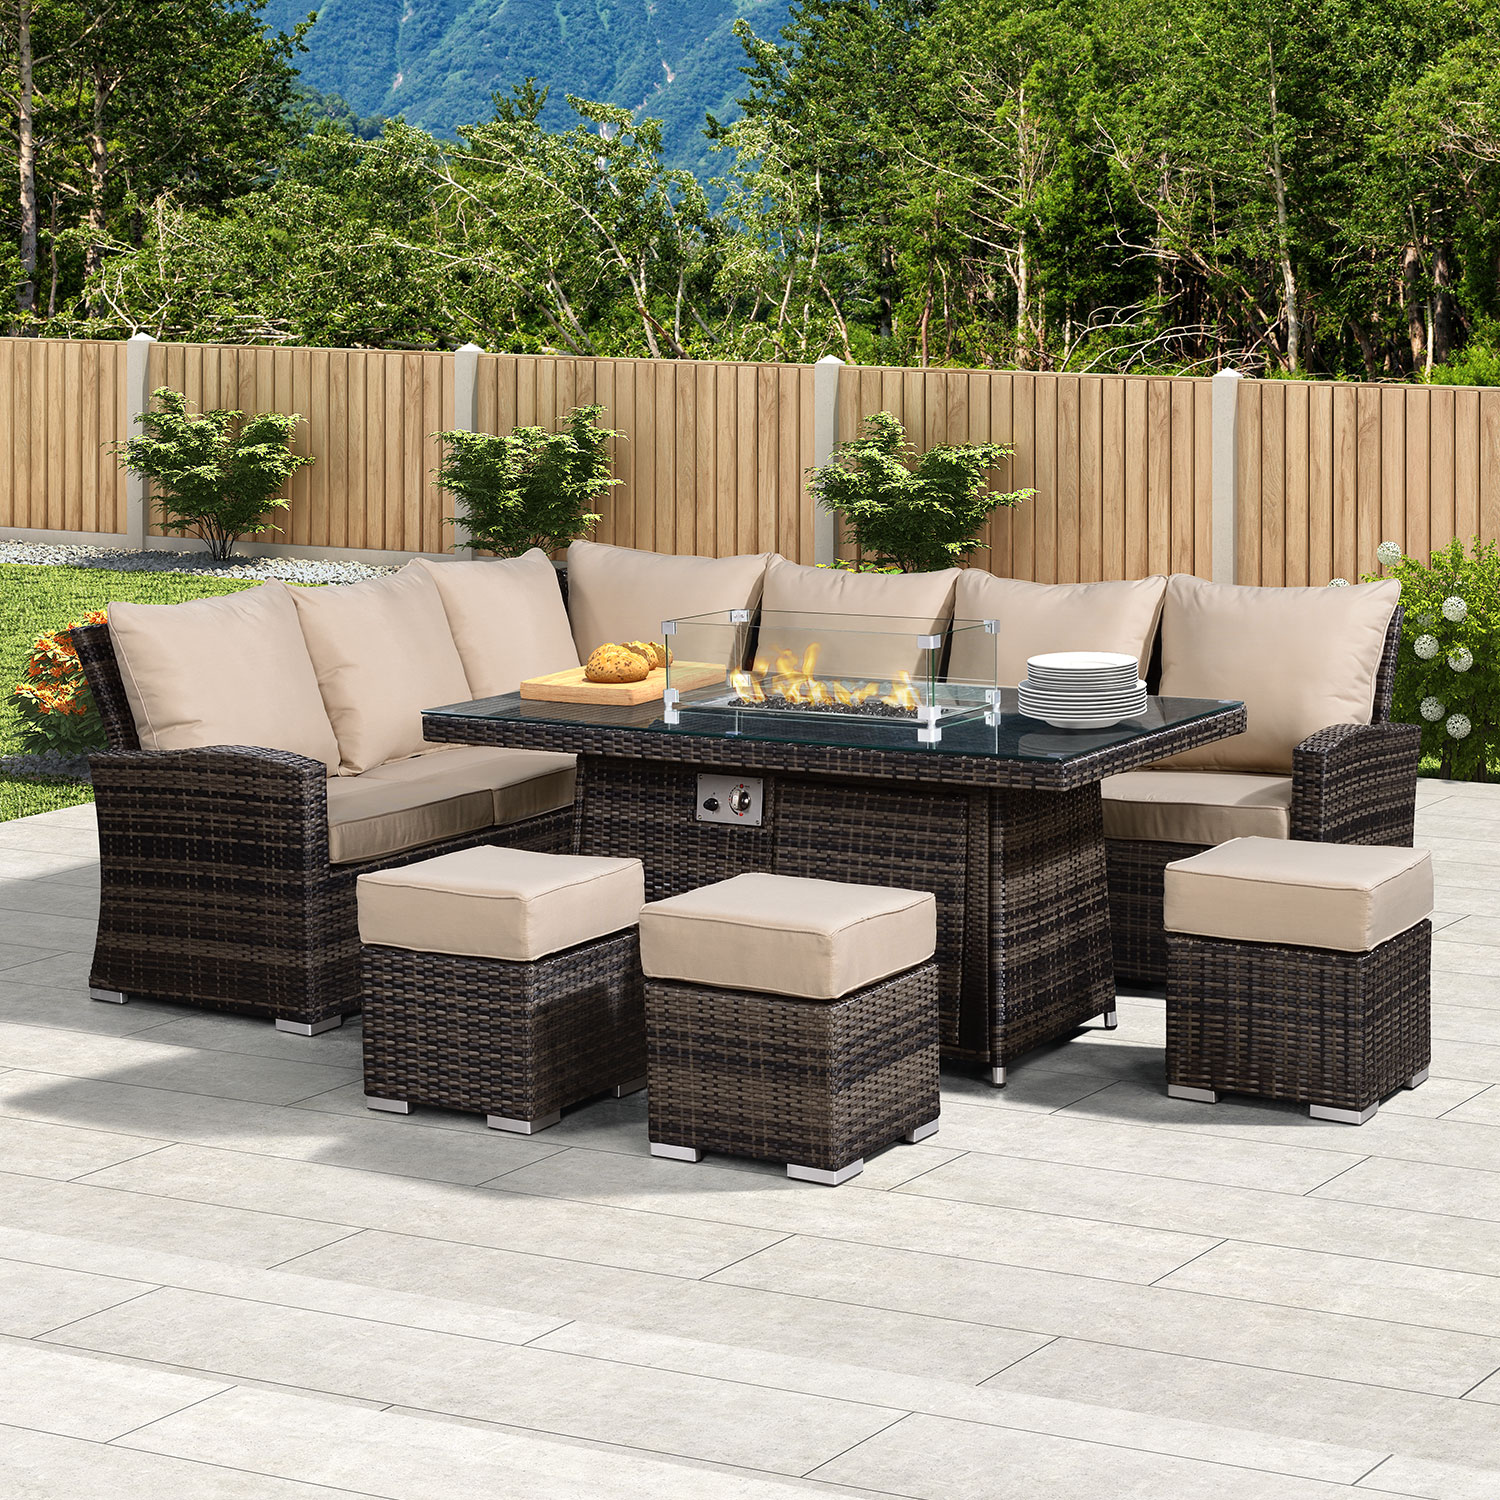 Picture of: Nova Cambridge Fireglow Left Hand Rattan Corner Sofa Dining Set With Gas Firepit Table Brown Crownhill